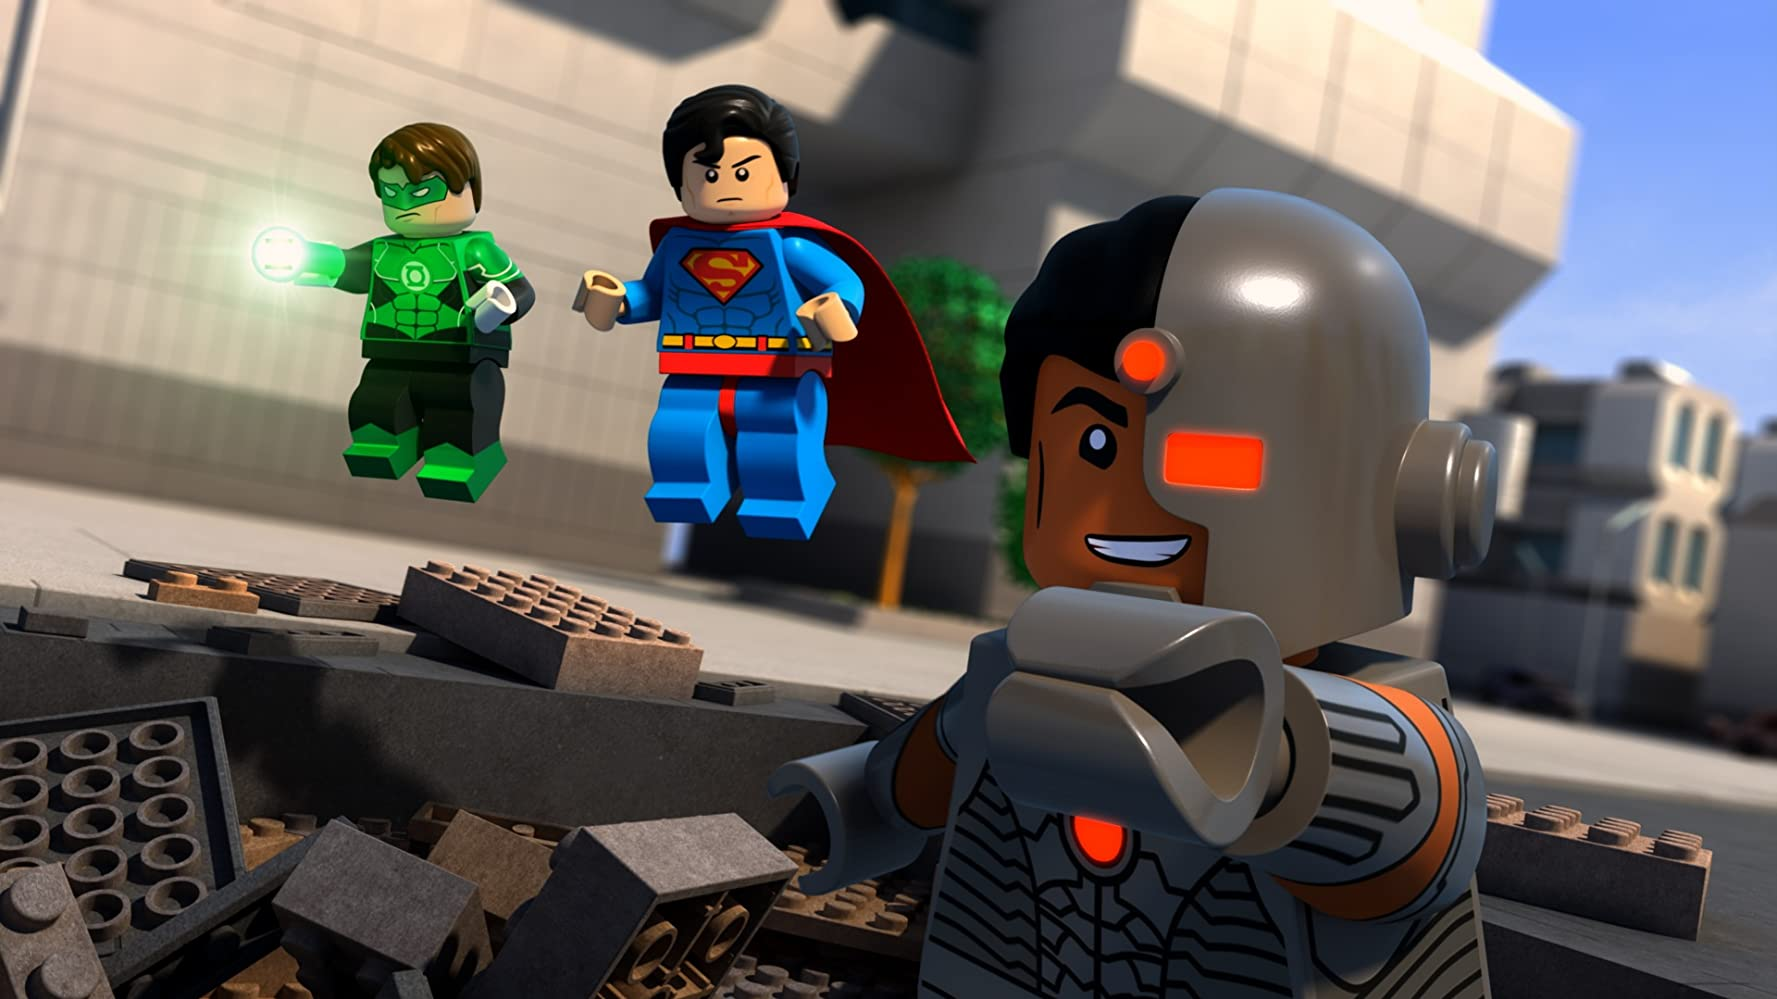 LEGO DC Liga de la Justicia: Ataque de la Legión del Mal (Lego's Justice League: Attack of the Legion of Doom!)